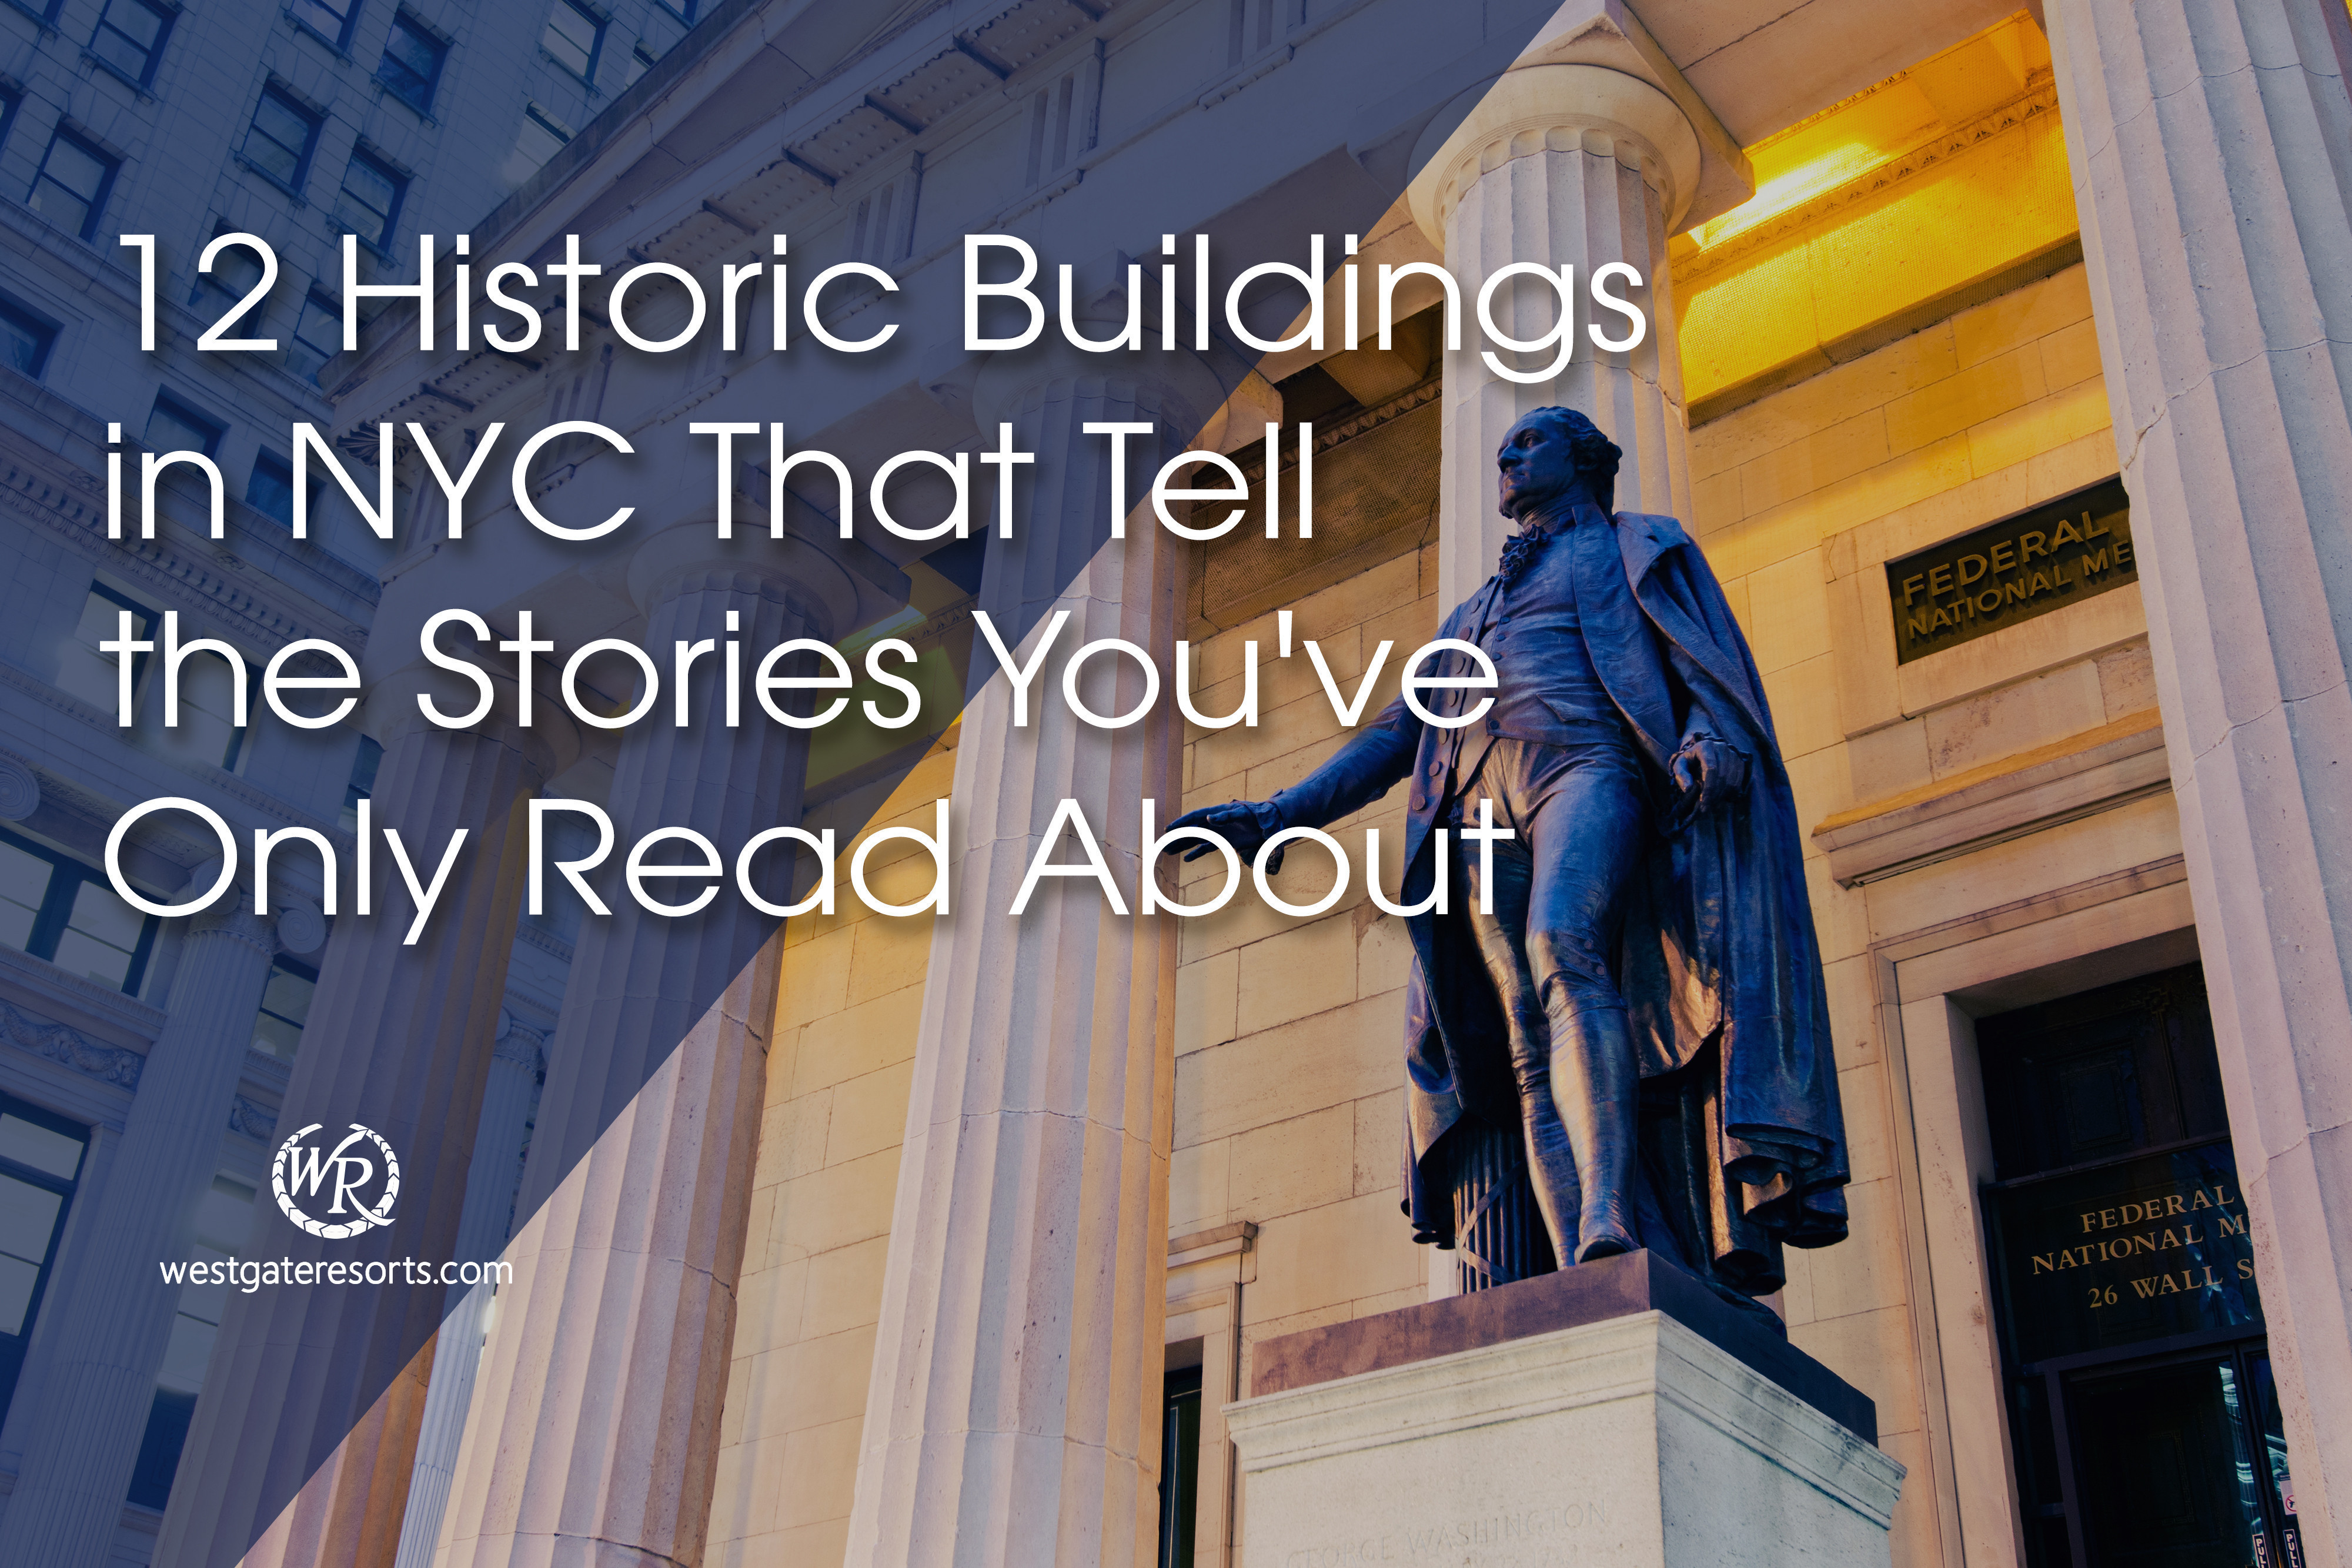 12 Historic Buildings in NYC That Tell the Stories You've Only Read About